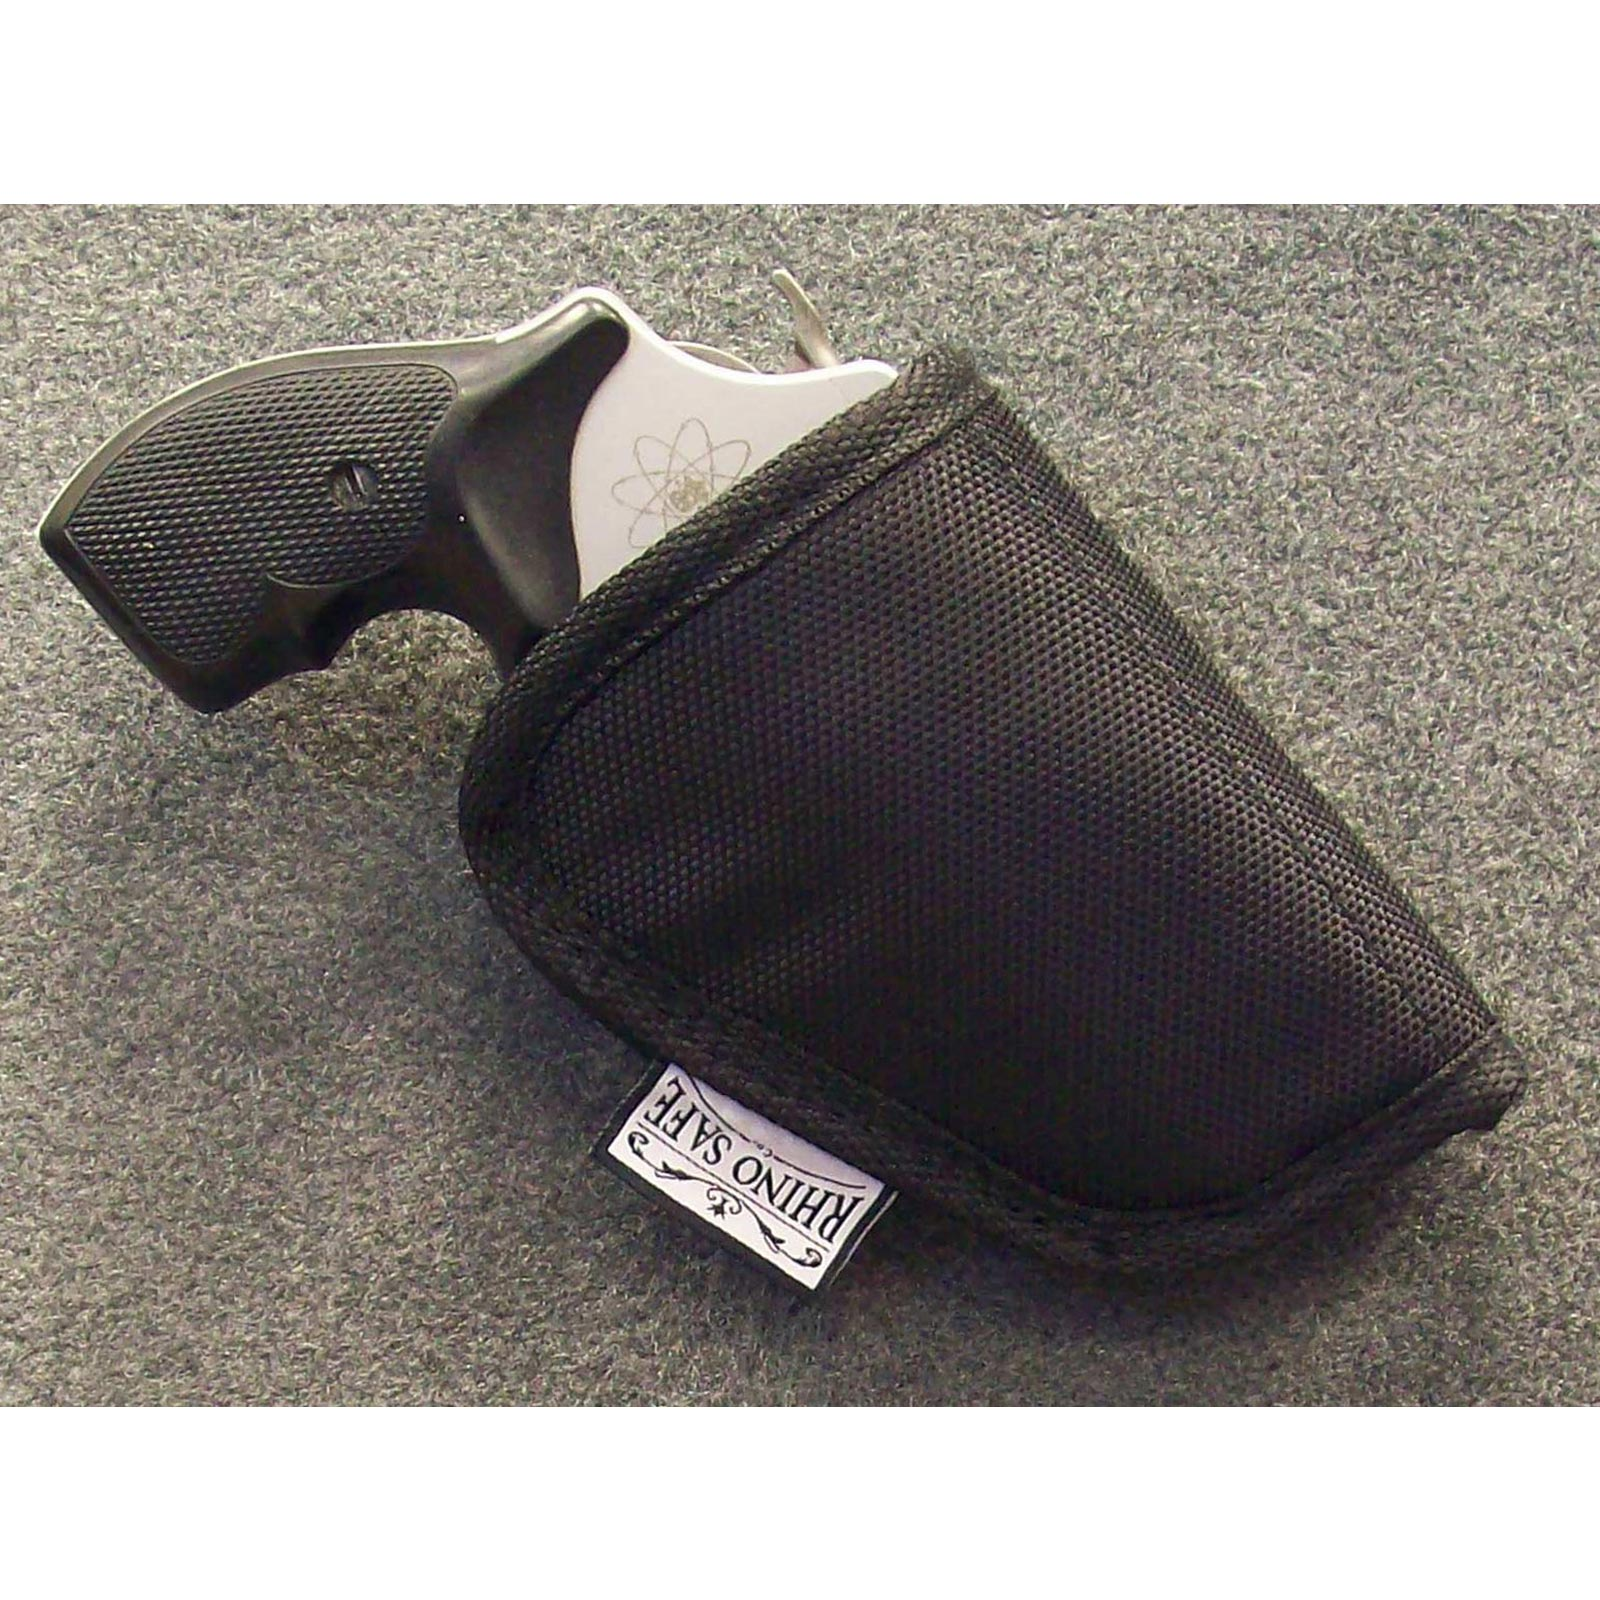 Rhino Safes Small Pistol Holster Pack Of 4 Small Holsters